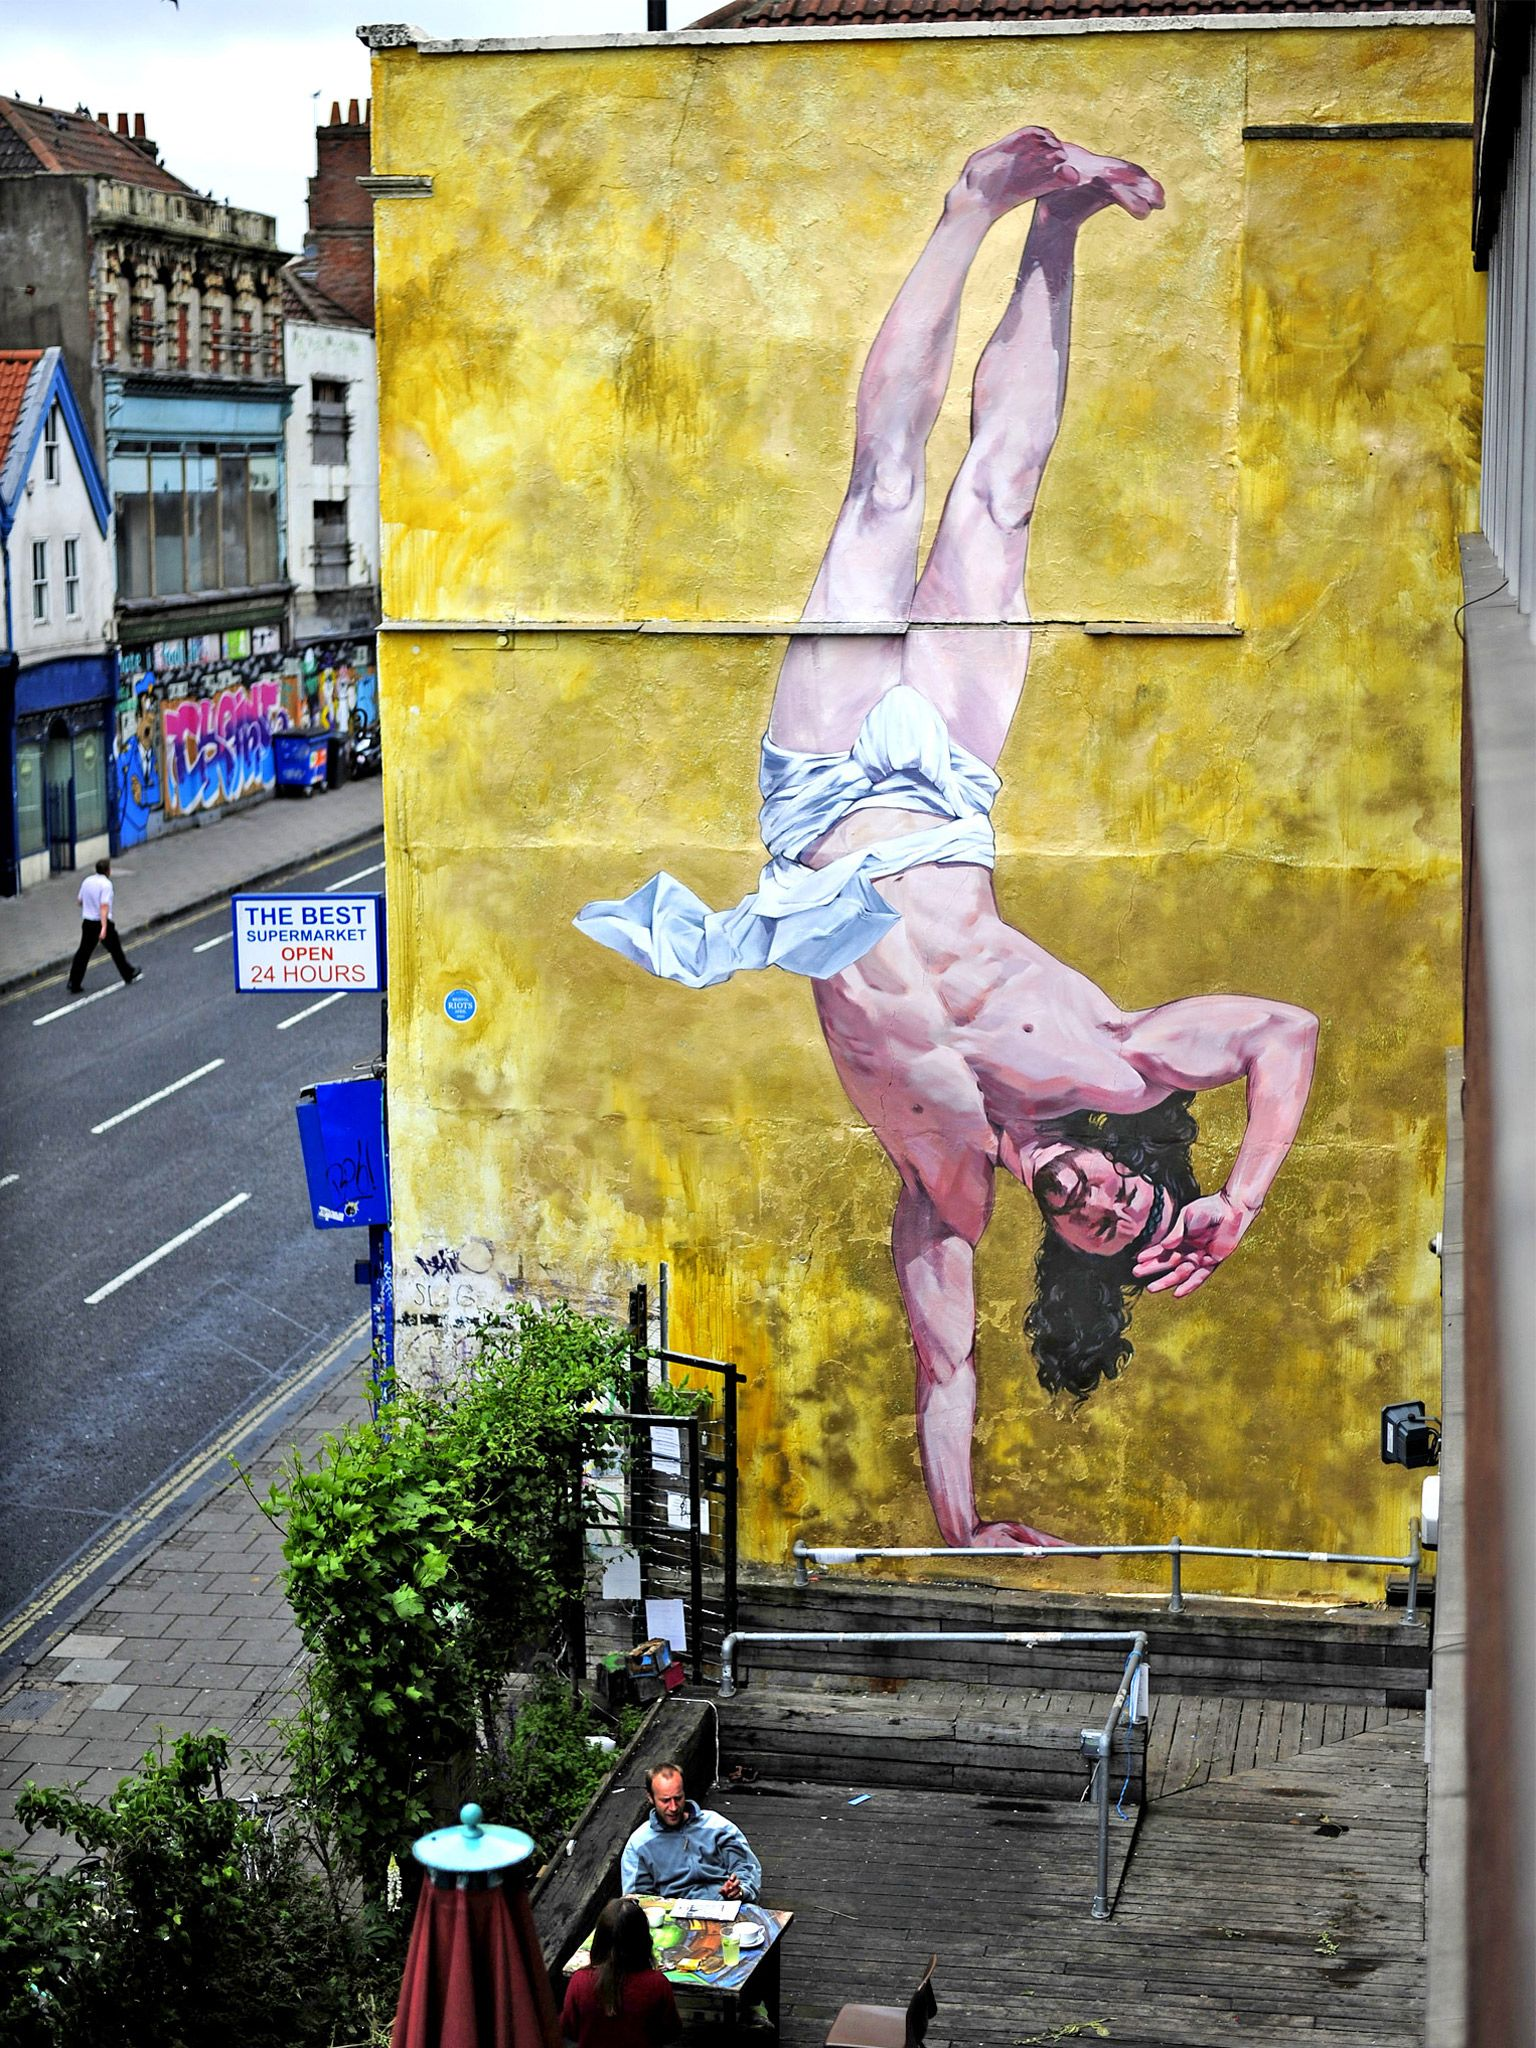 Municipal art: Jesus Christ, that mural is enormous! Breakdancing ...